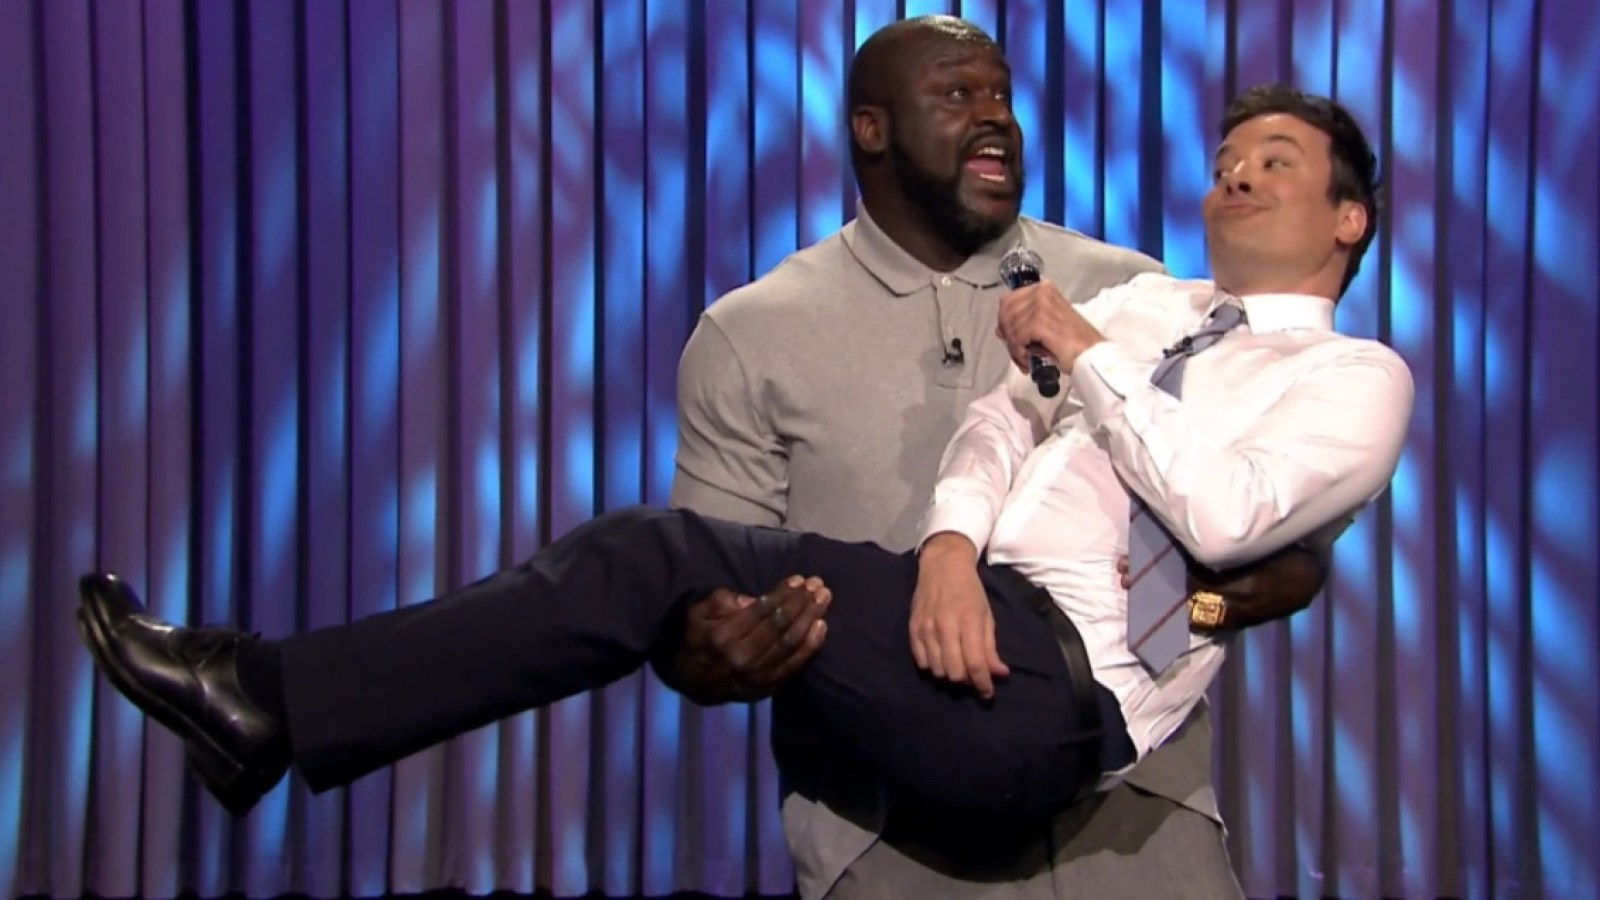 Shaquille O'Neal Kisses, Spanks Jimmy Fallon in Lip Sync Battle